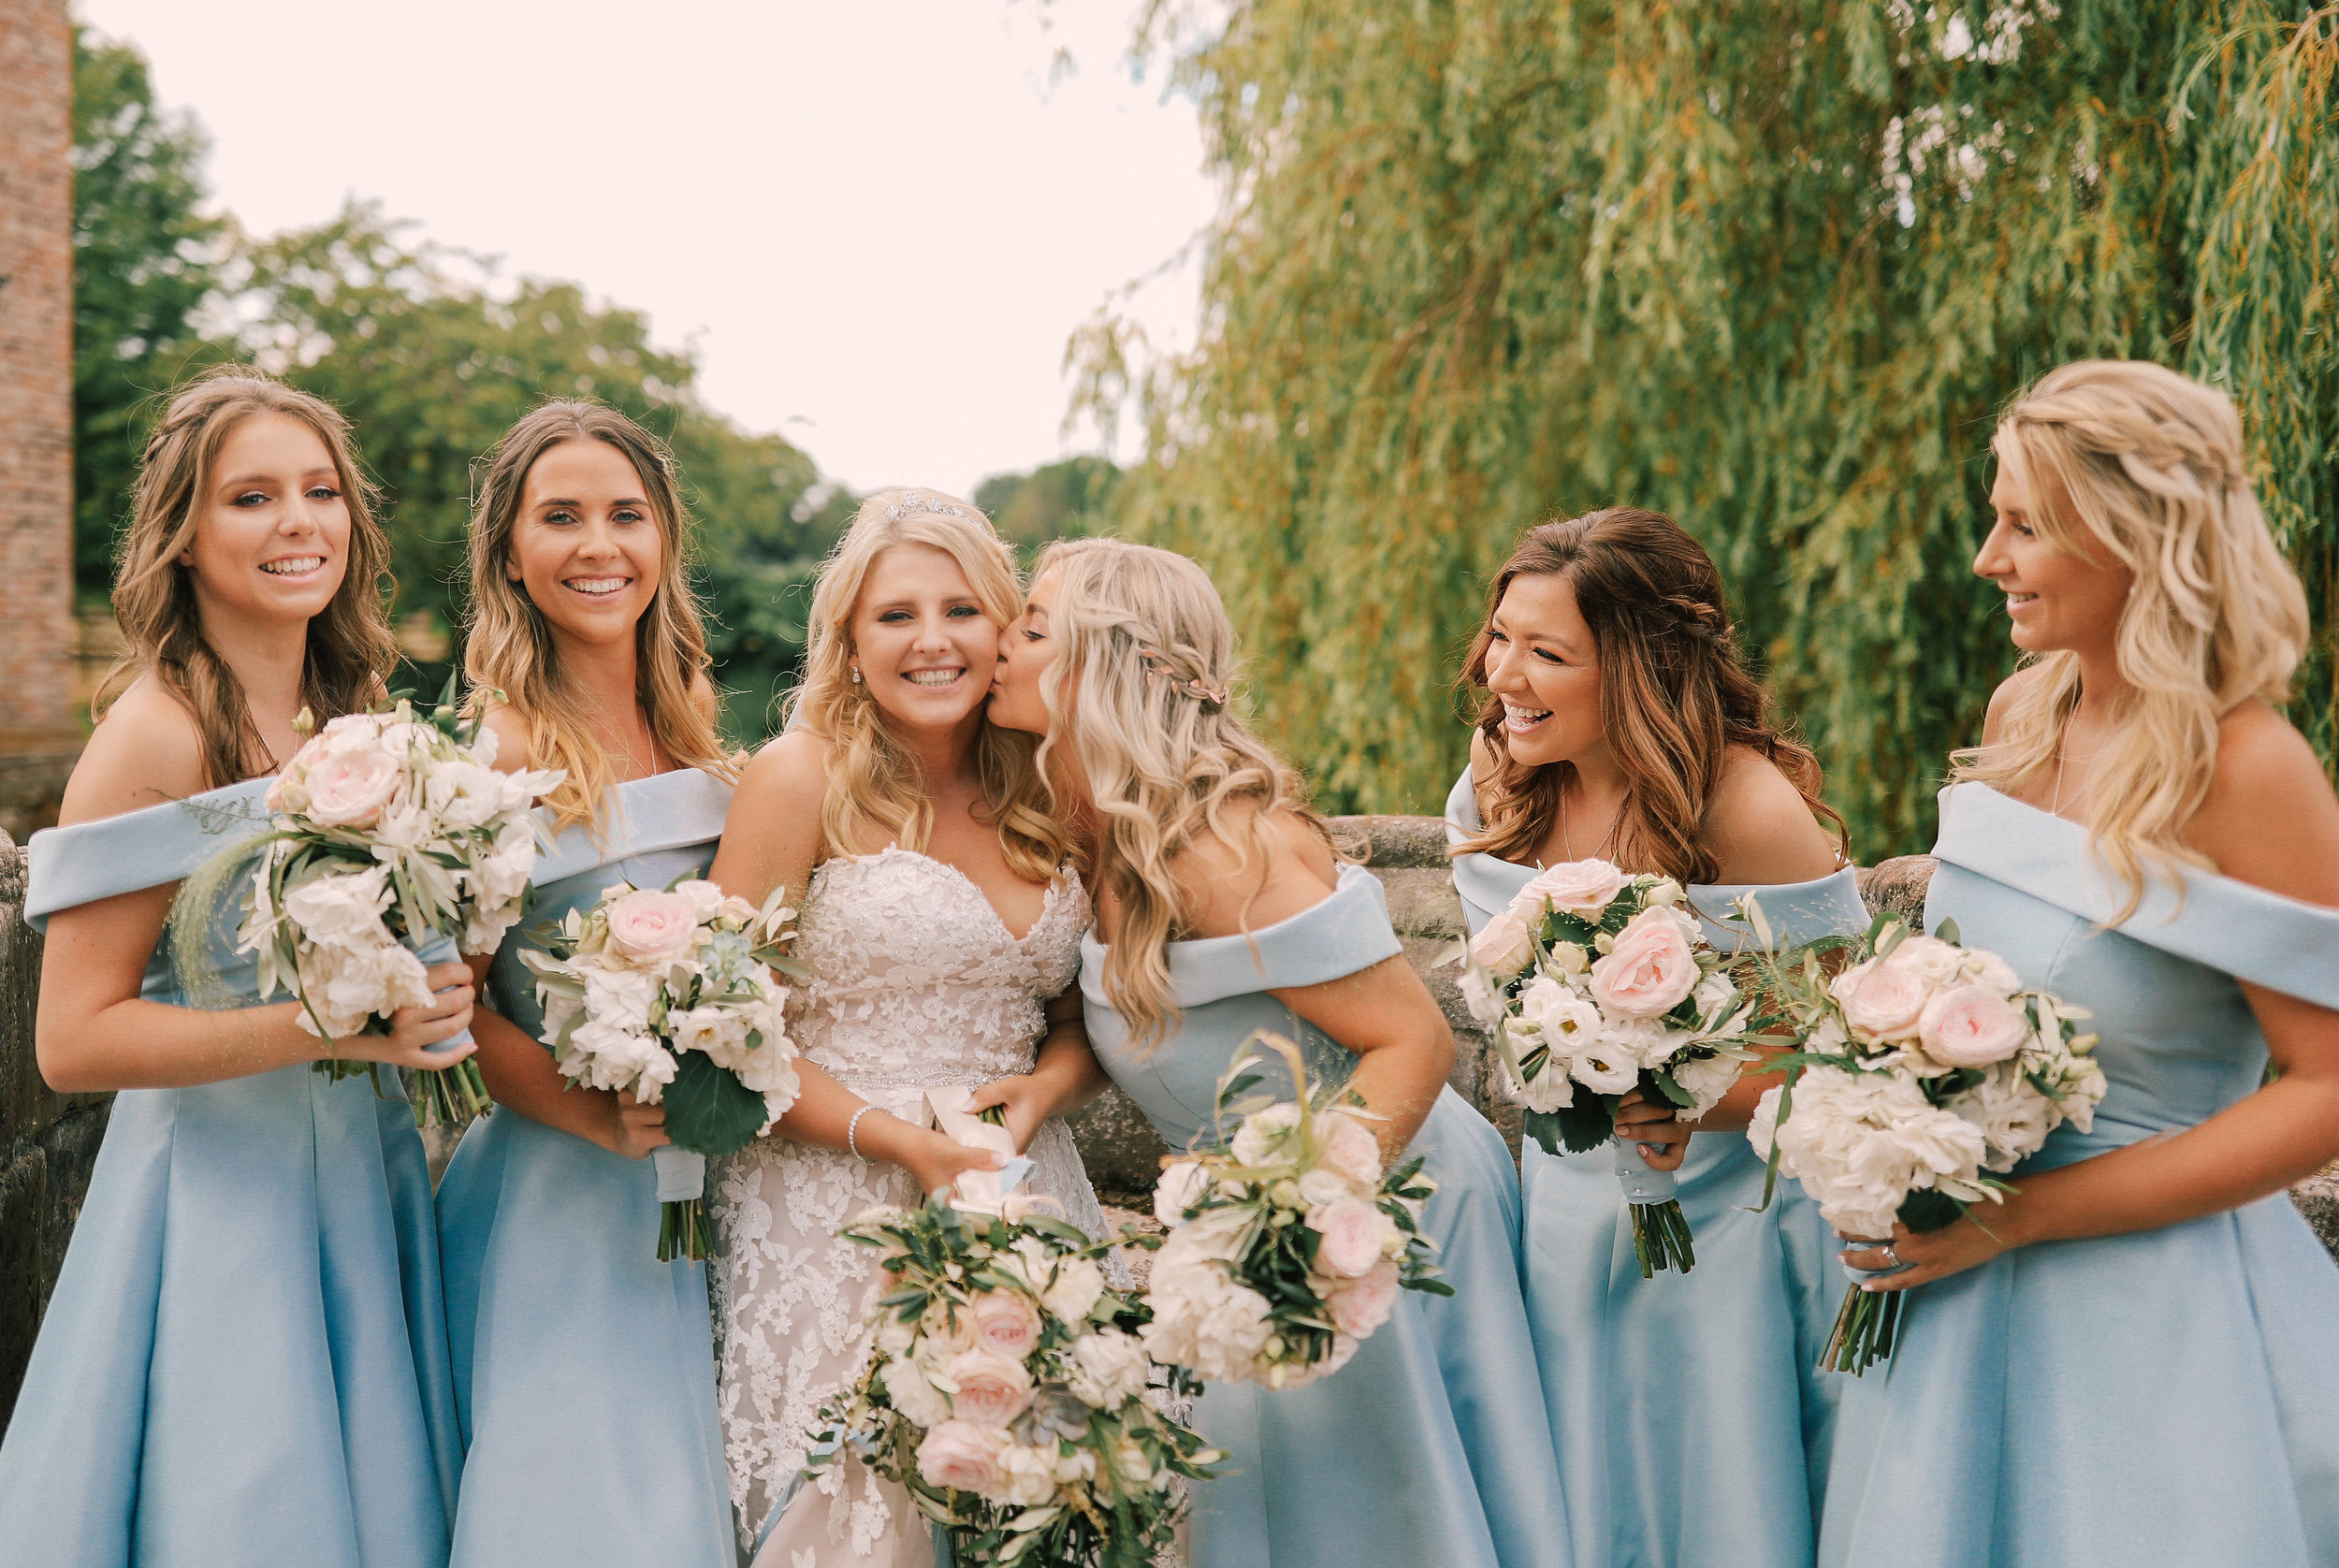 Boho Bride and half-up half-down bridesmaids hair